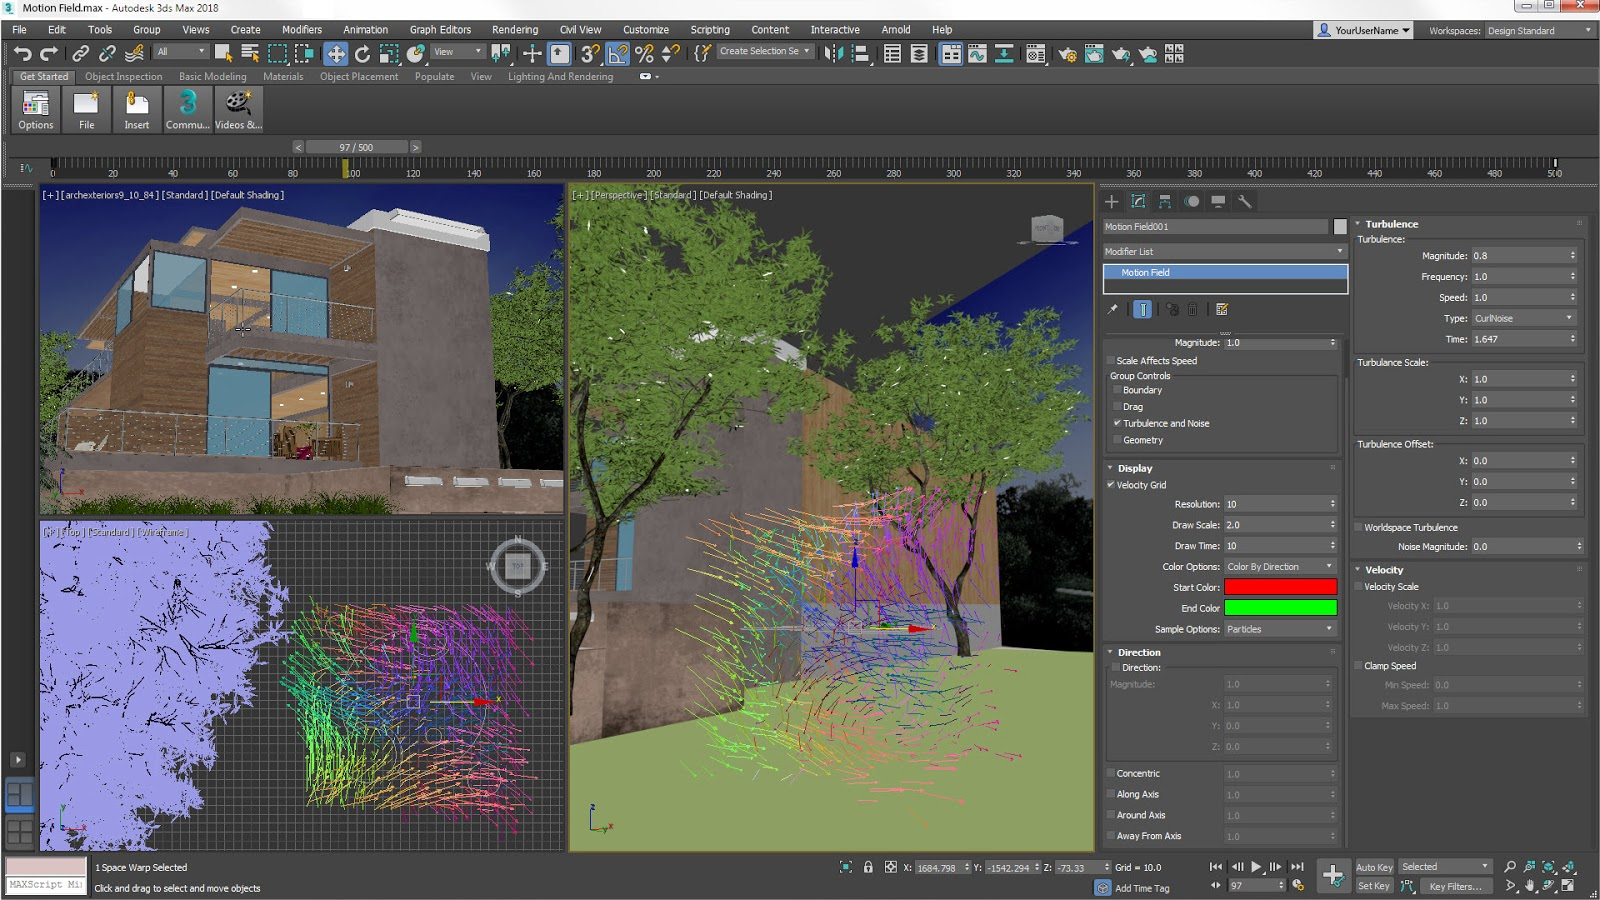 Autodesk 3ds Max 2018 3 | Computer Graphics Daily News